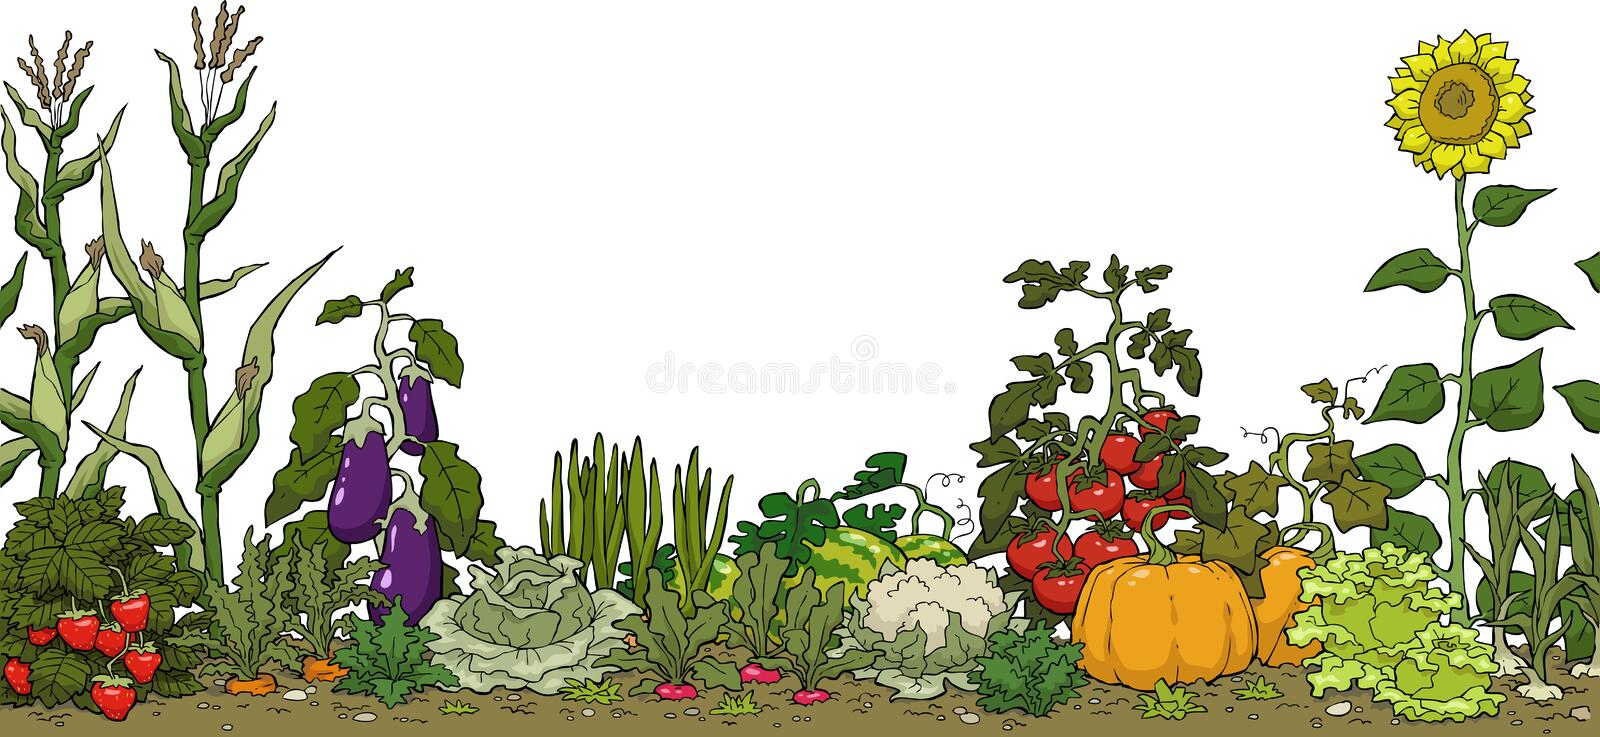 Vegetable garden bed royalty free illustration